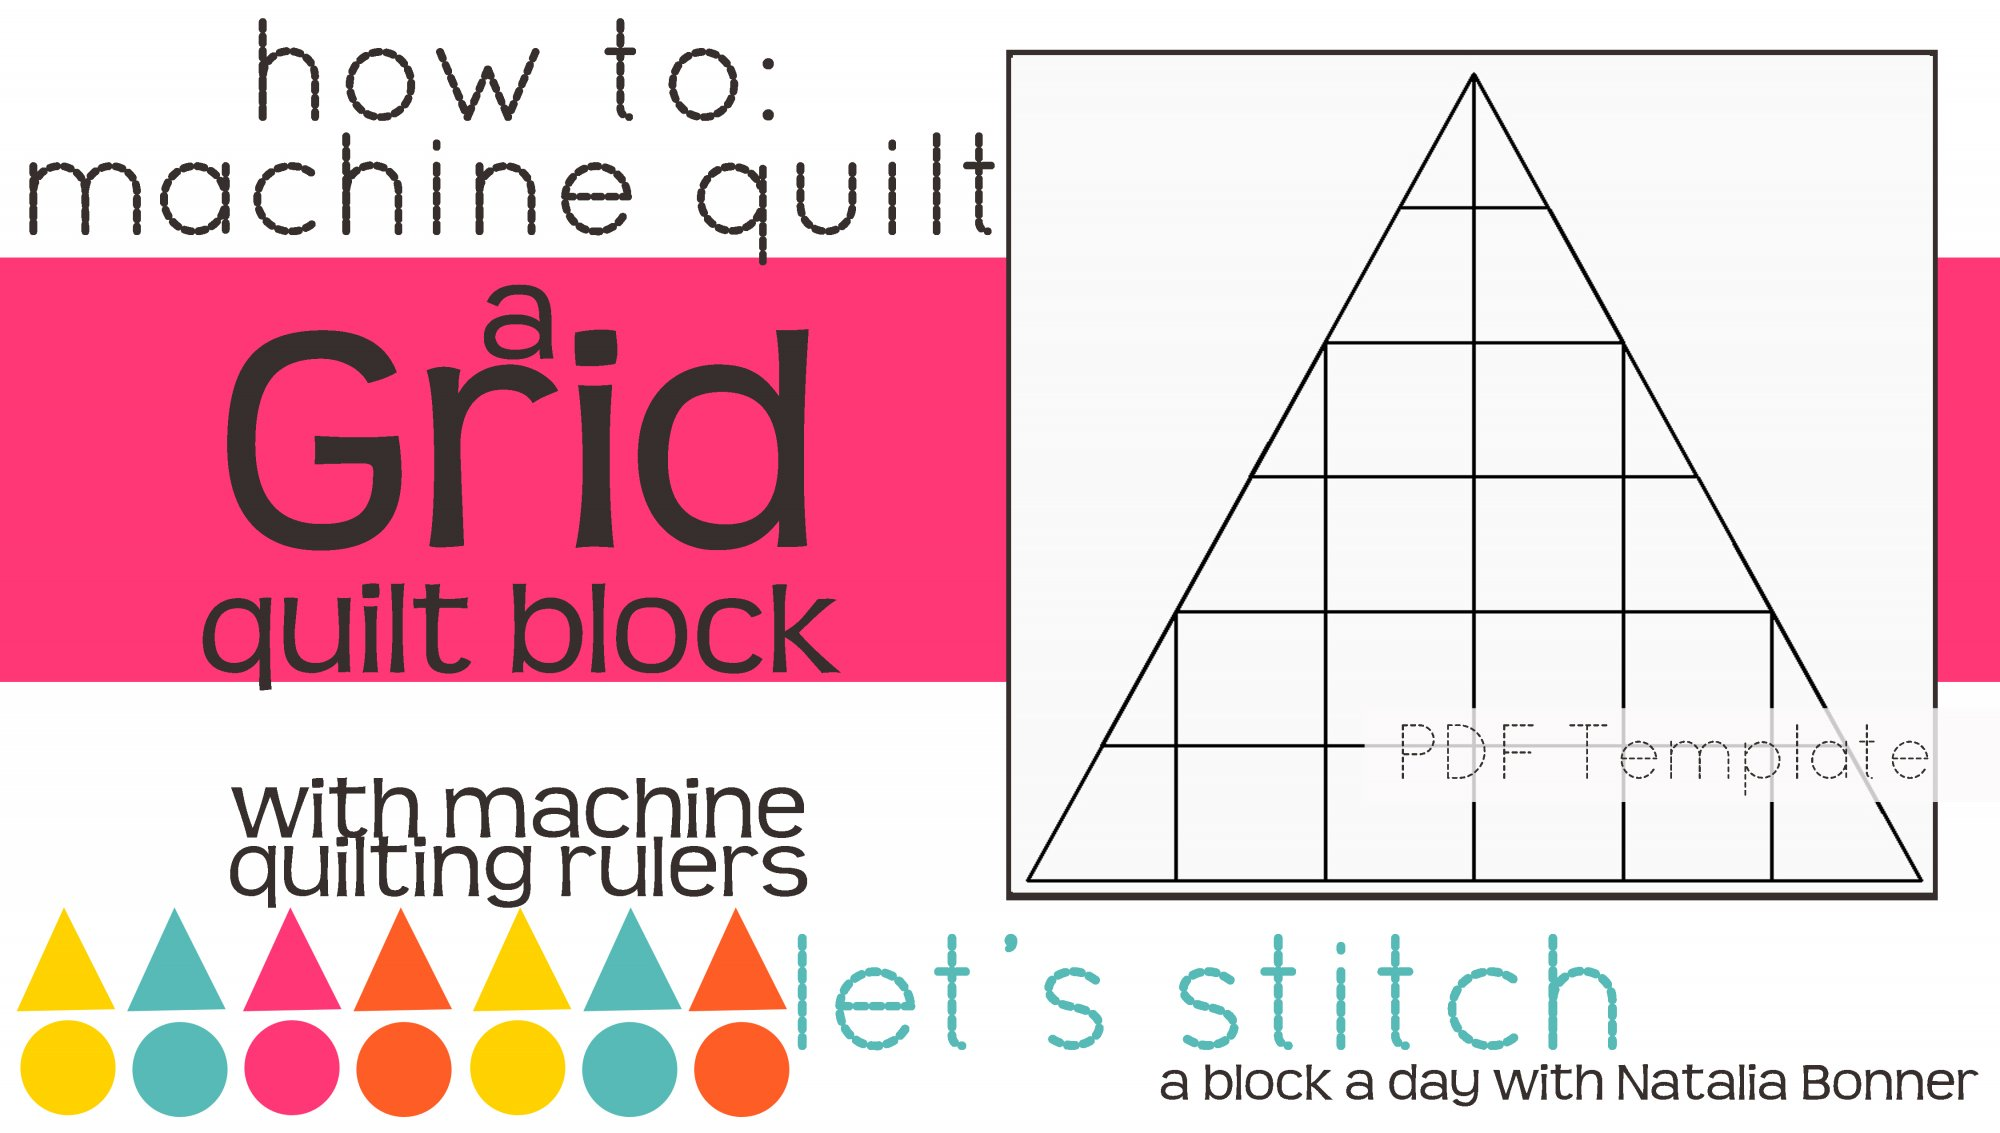 Let's Stitch - A Block a Day With Natalia Bonner - PDF - Grid